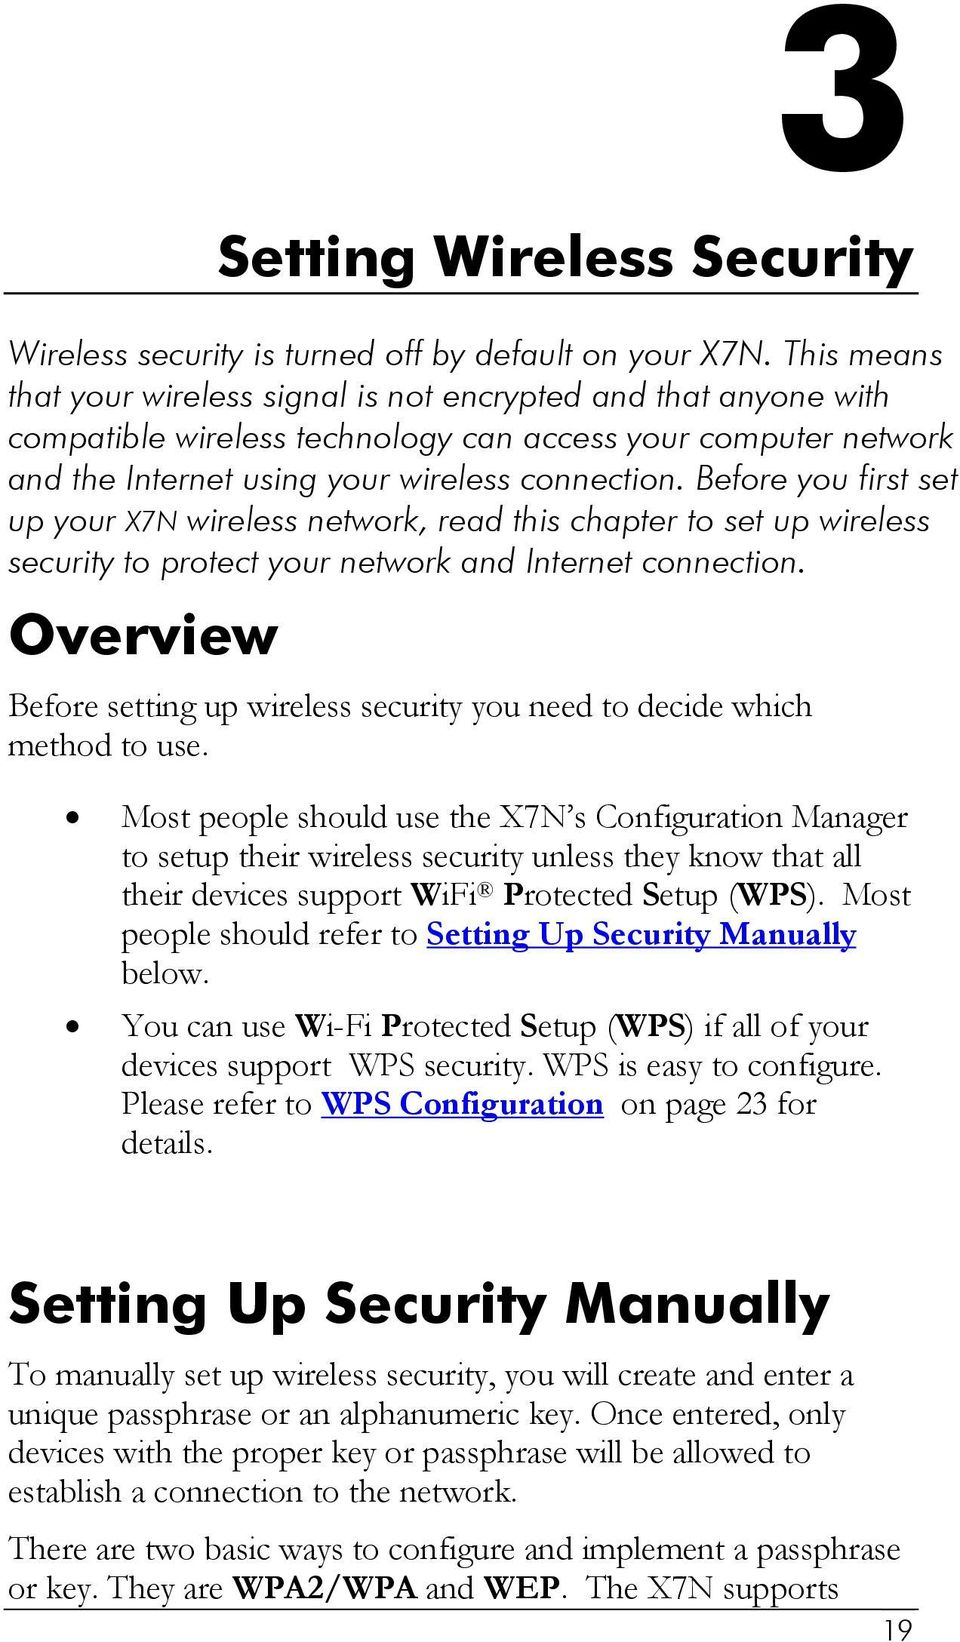 Before you first set up your X7N wireless network, read this chapter to set up wireless security to protect your network and Internet connection.